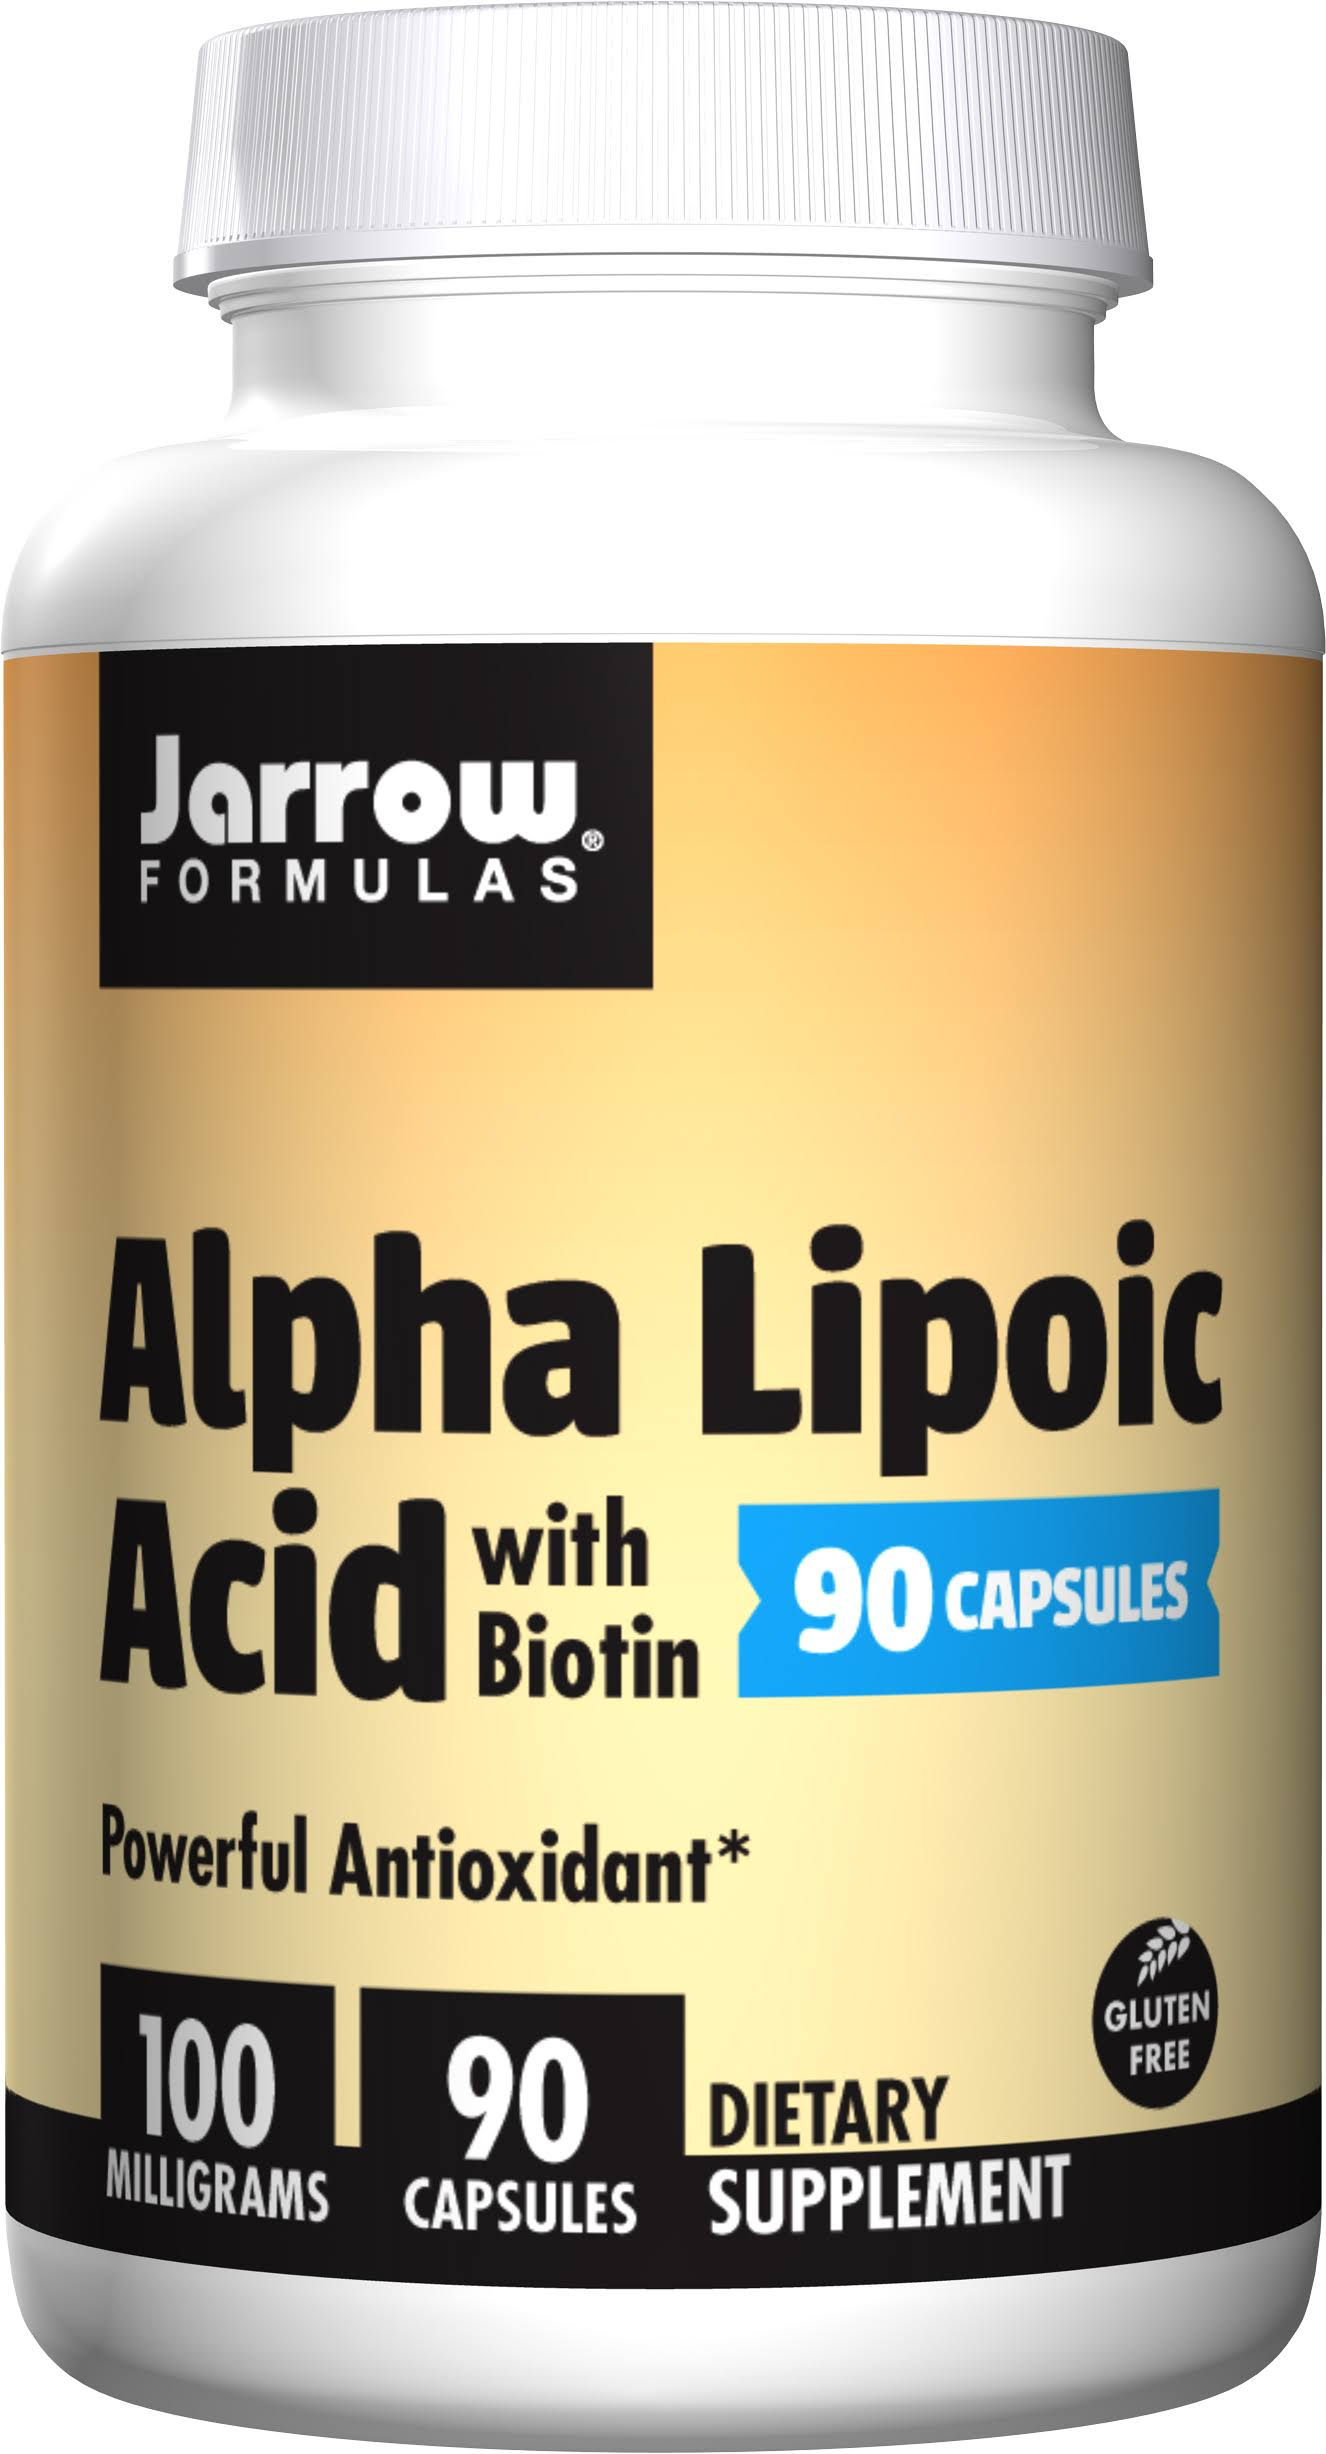 Jarrow Formulas Alpha Lipoic Acid with Biotin Supplement - 100mg, 90 Capsules